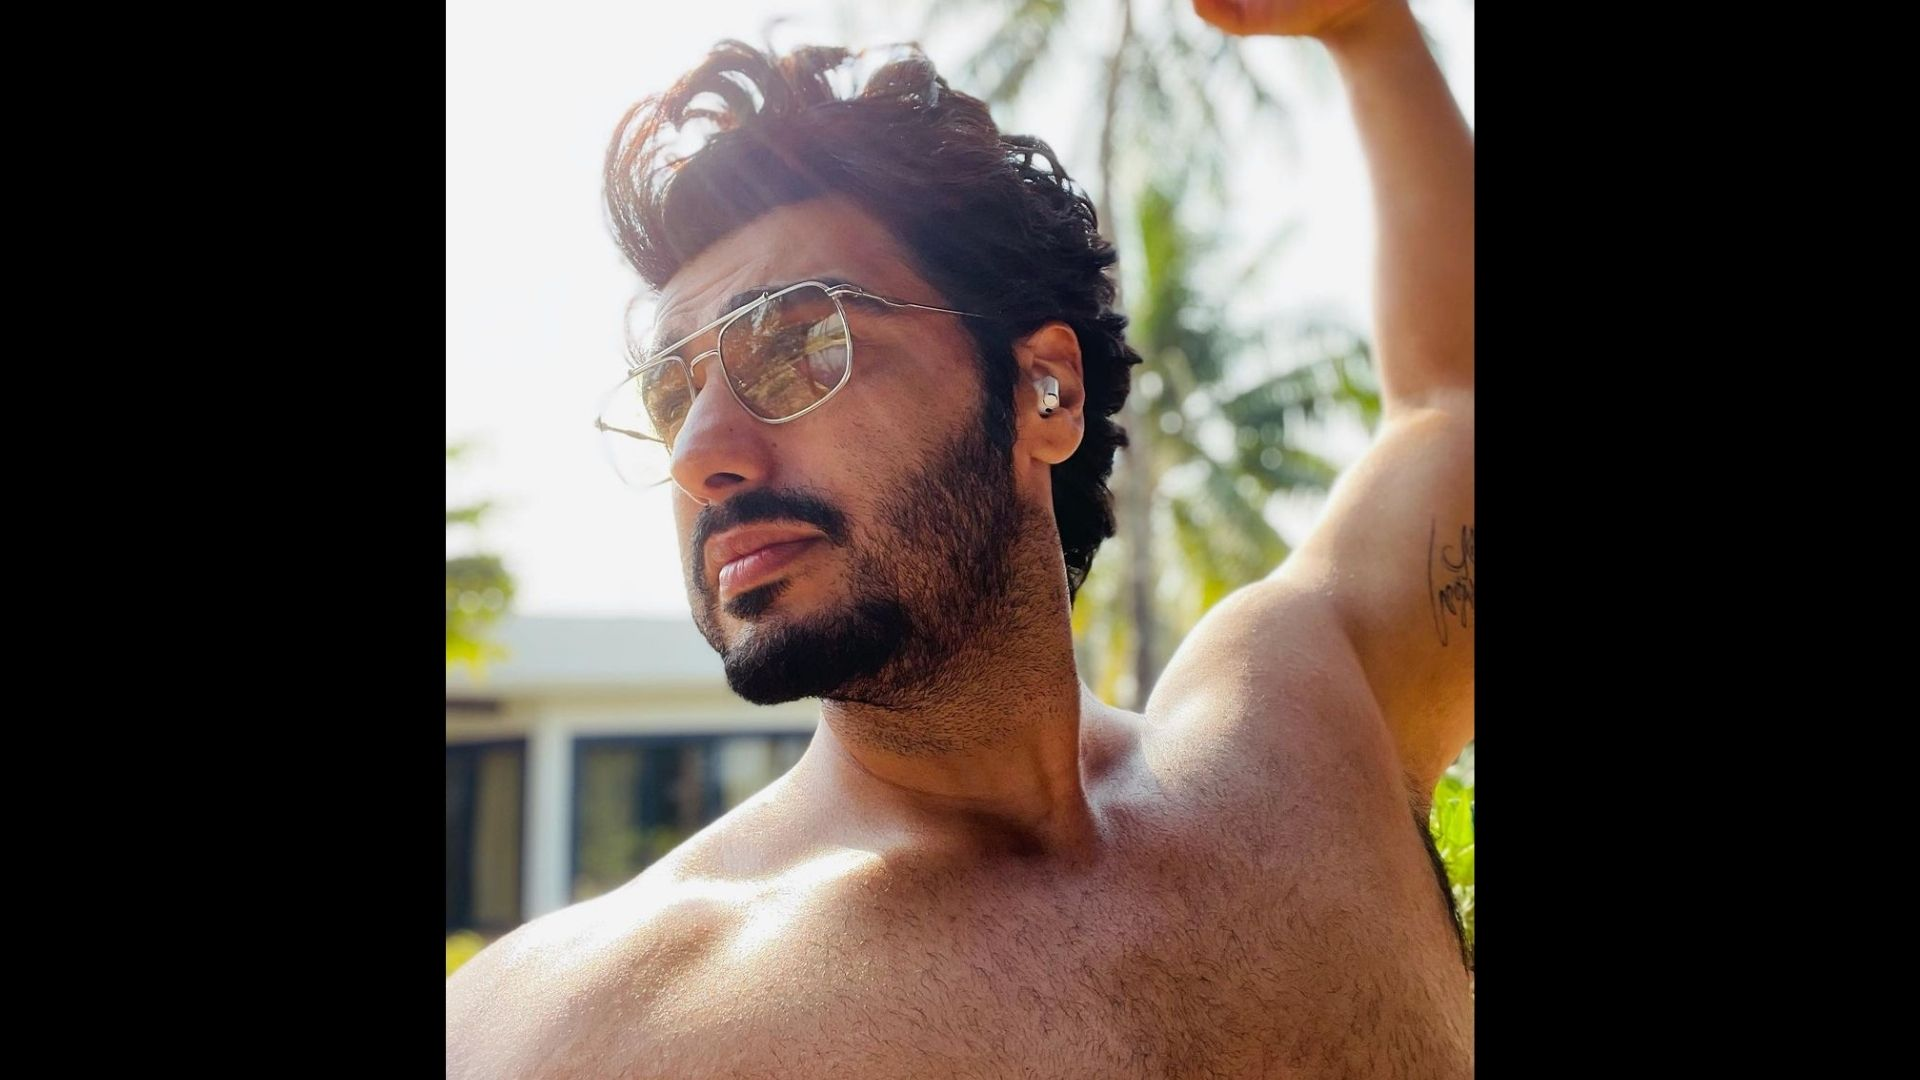 Arjun Kapoor Flaunts His Muscular Body That He Built With His Hardwork And Sweat; Shares An Inspirational Photo